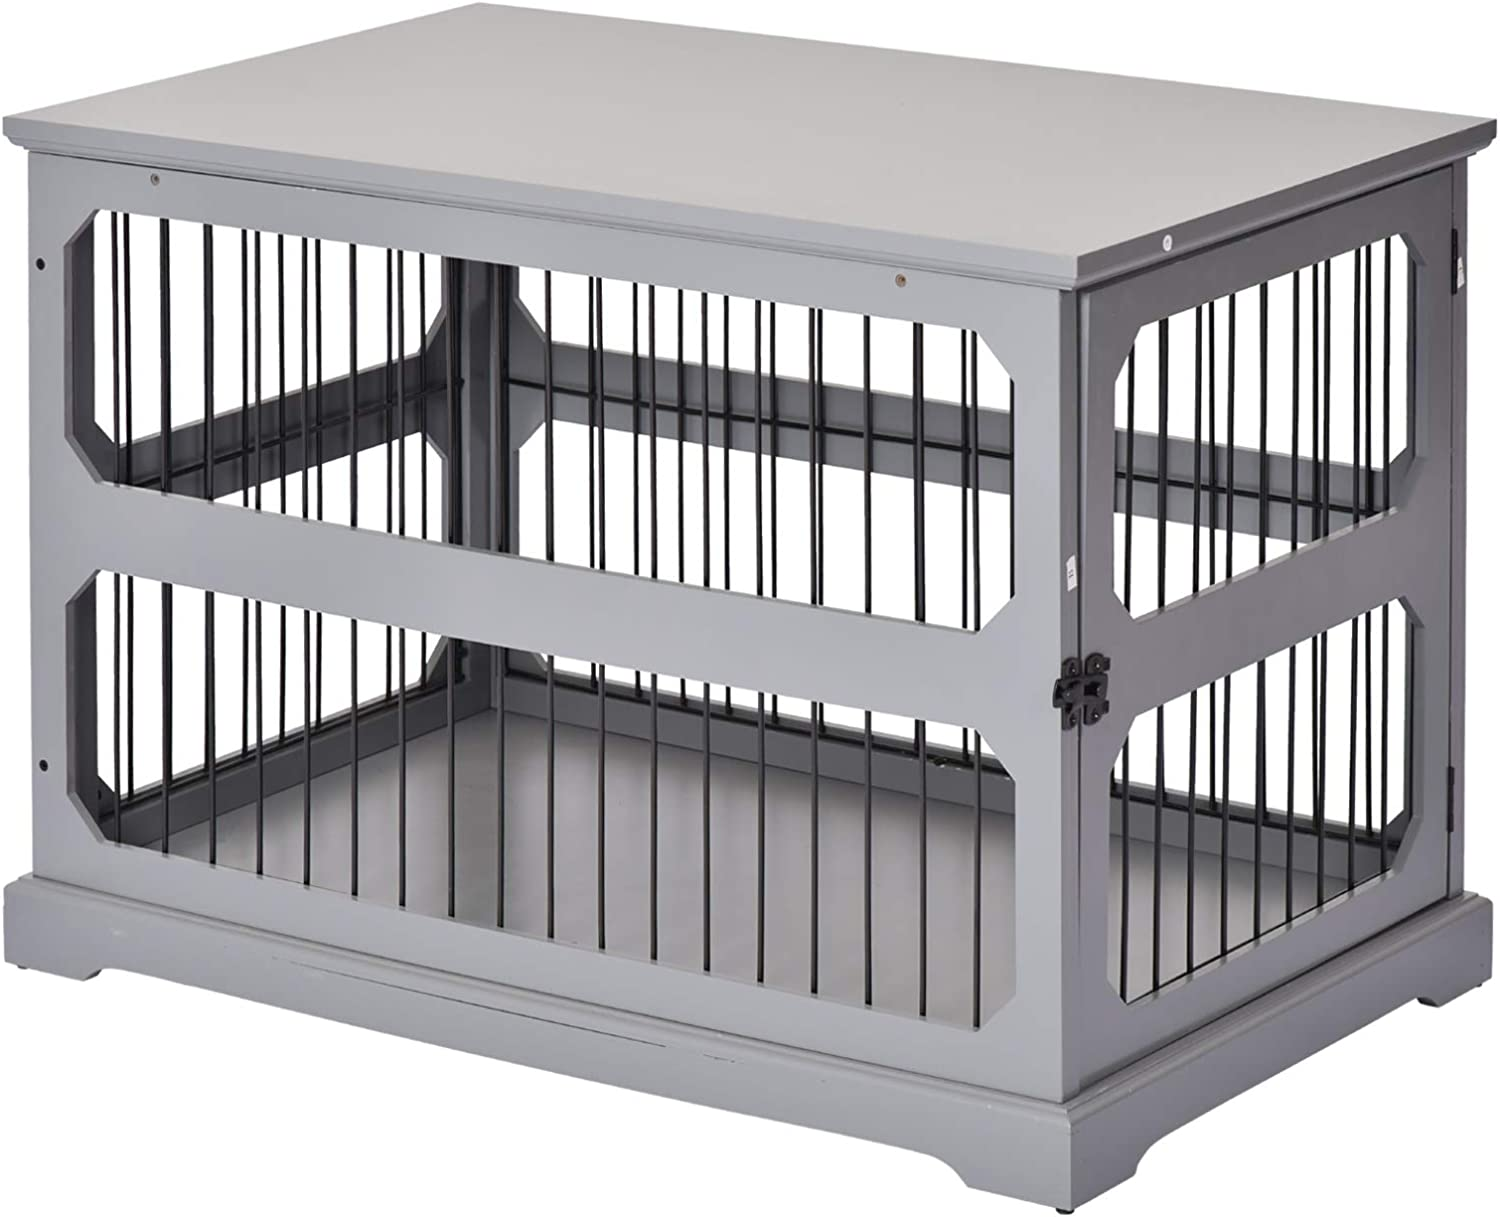 PawHut Decorative Dog Cage/Crate Kennel with Strong Construction Materials & a Classic Americana Style, Grey